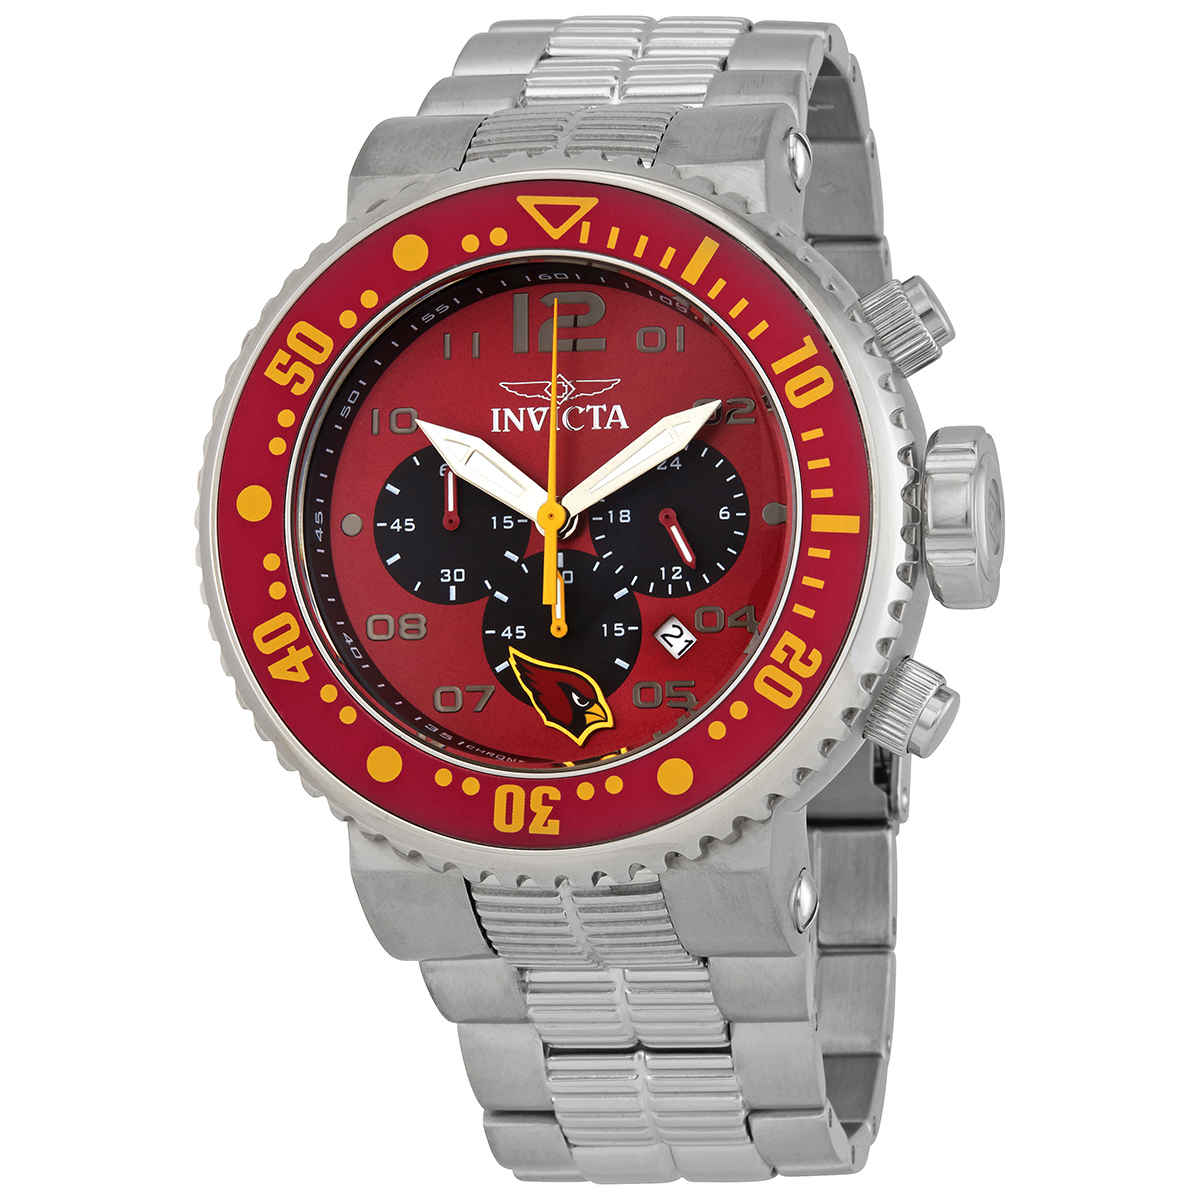 Invicta Nfl Arizona Cardinals Chronograph Quartz Mens Watch 30255 In Metallic